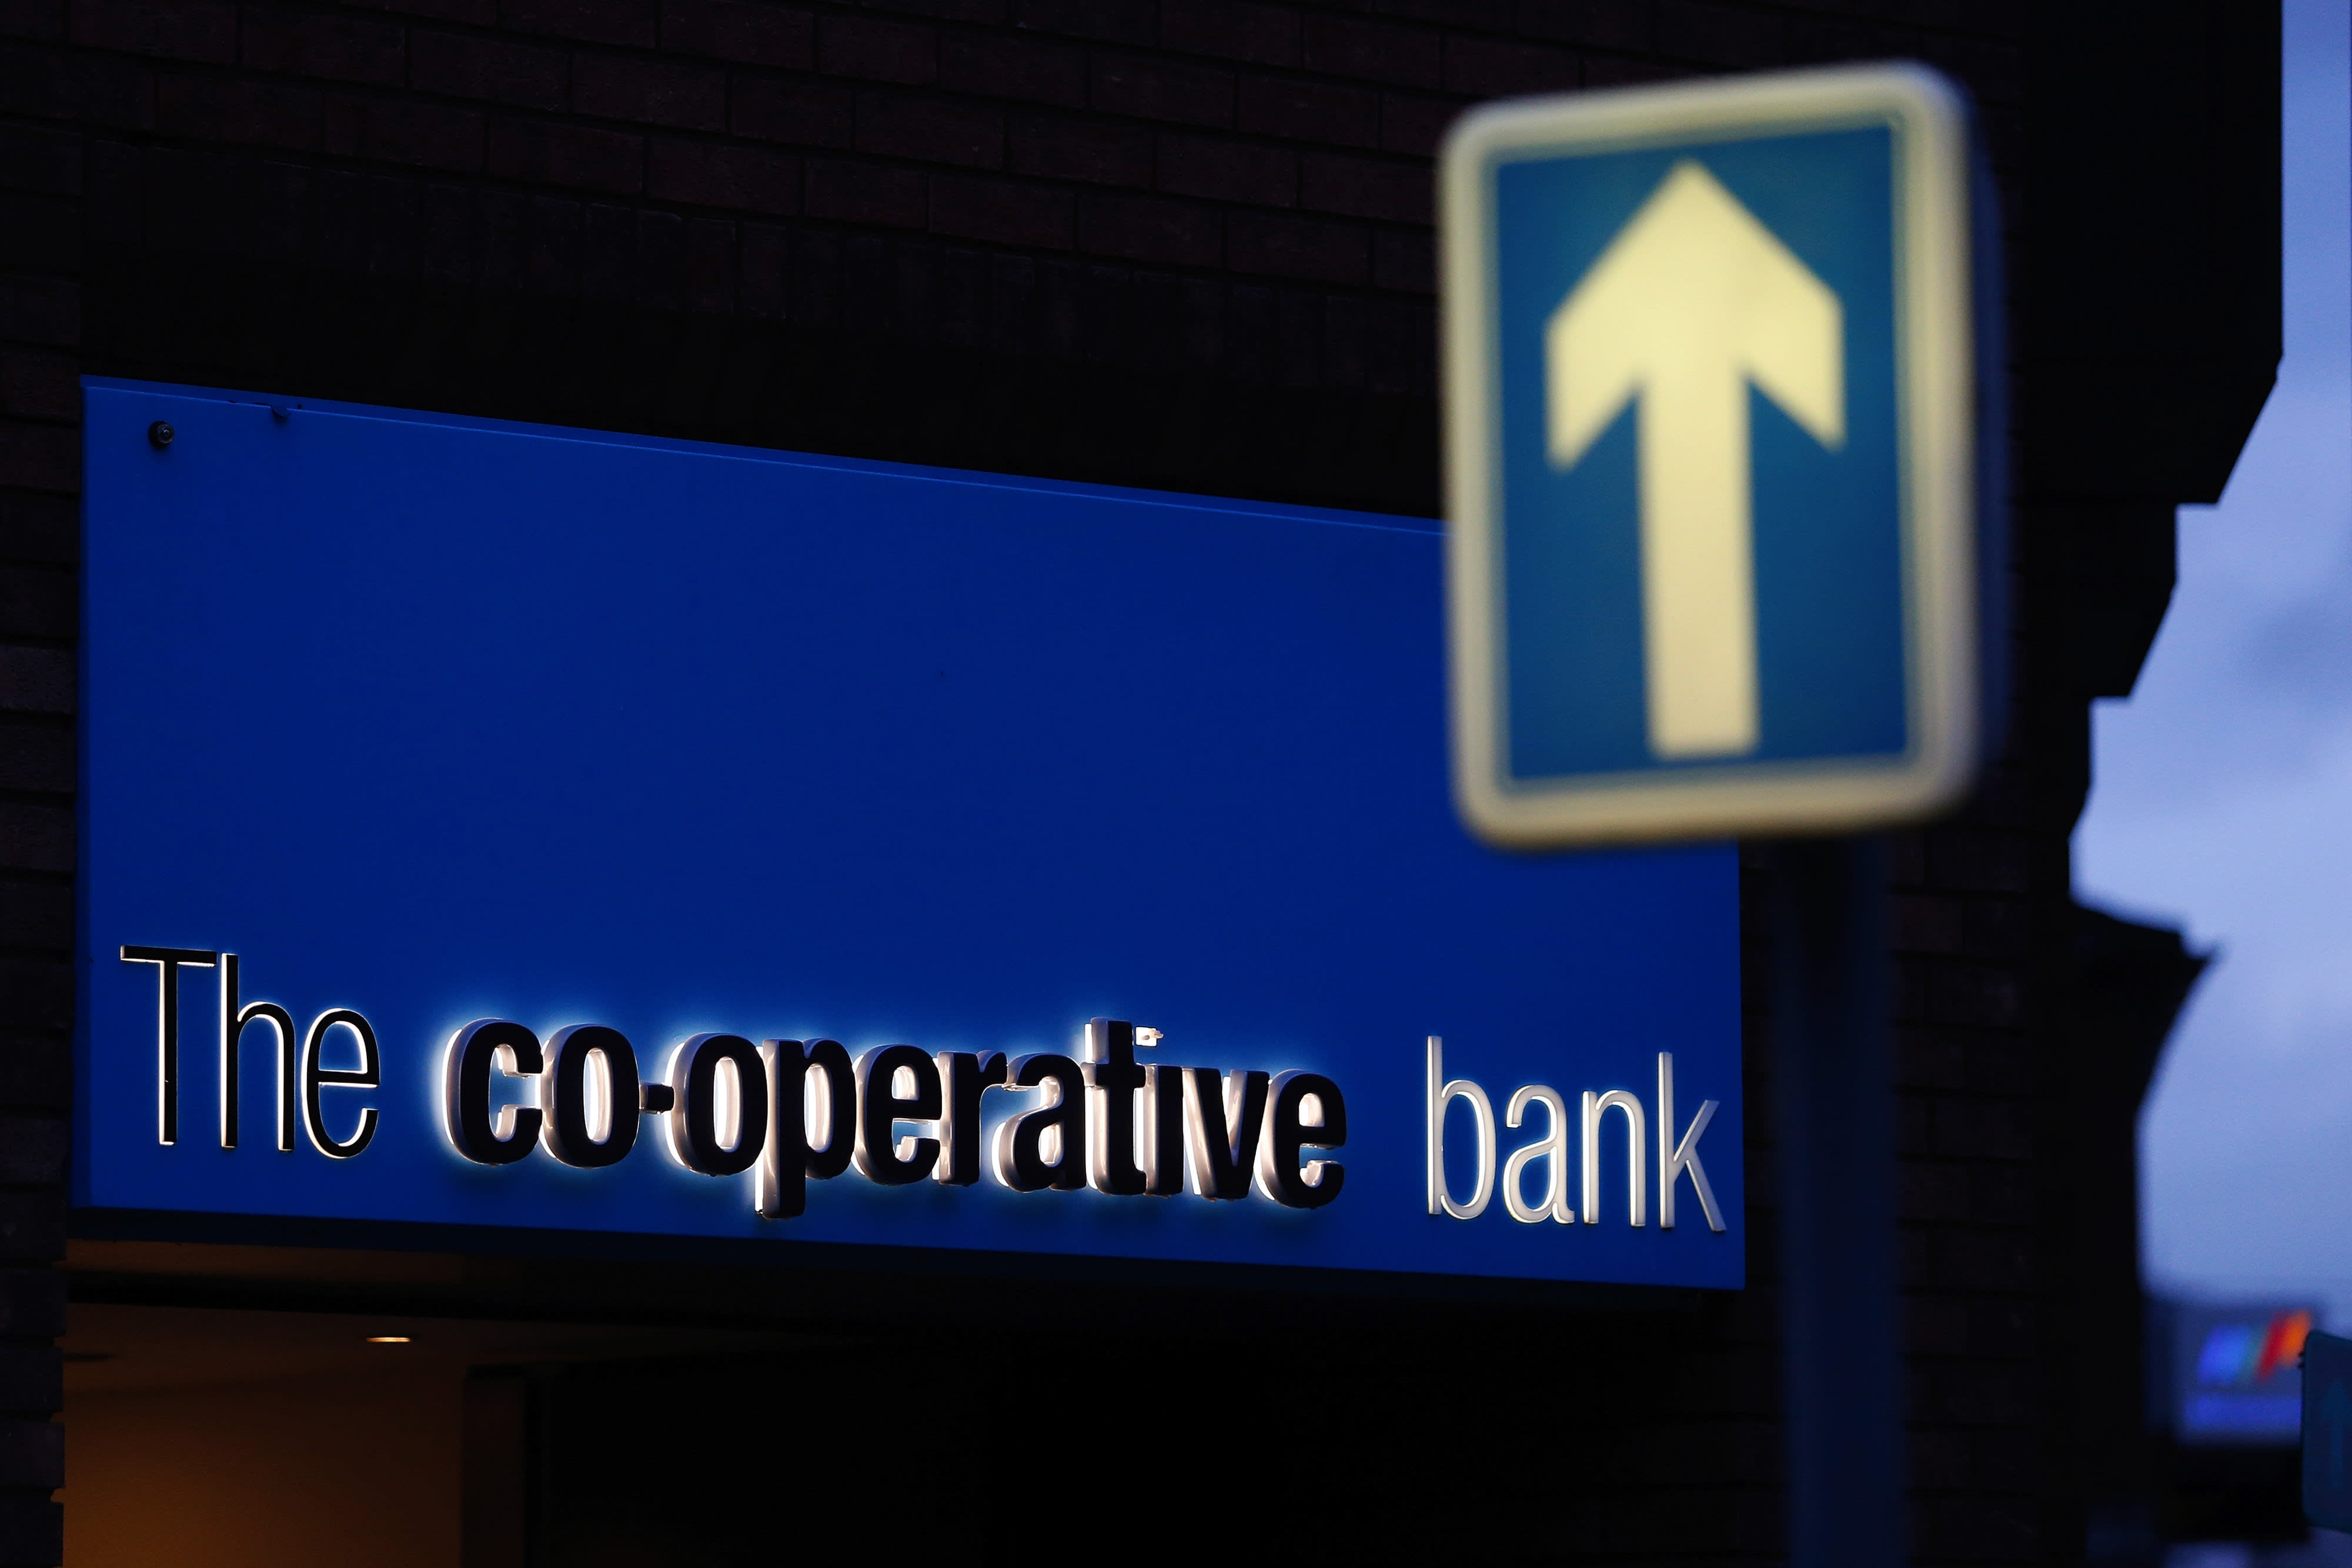 PRA denied access to interview transcripts in Coop review